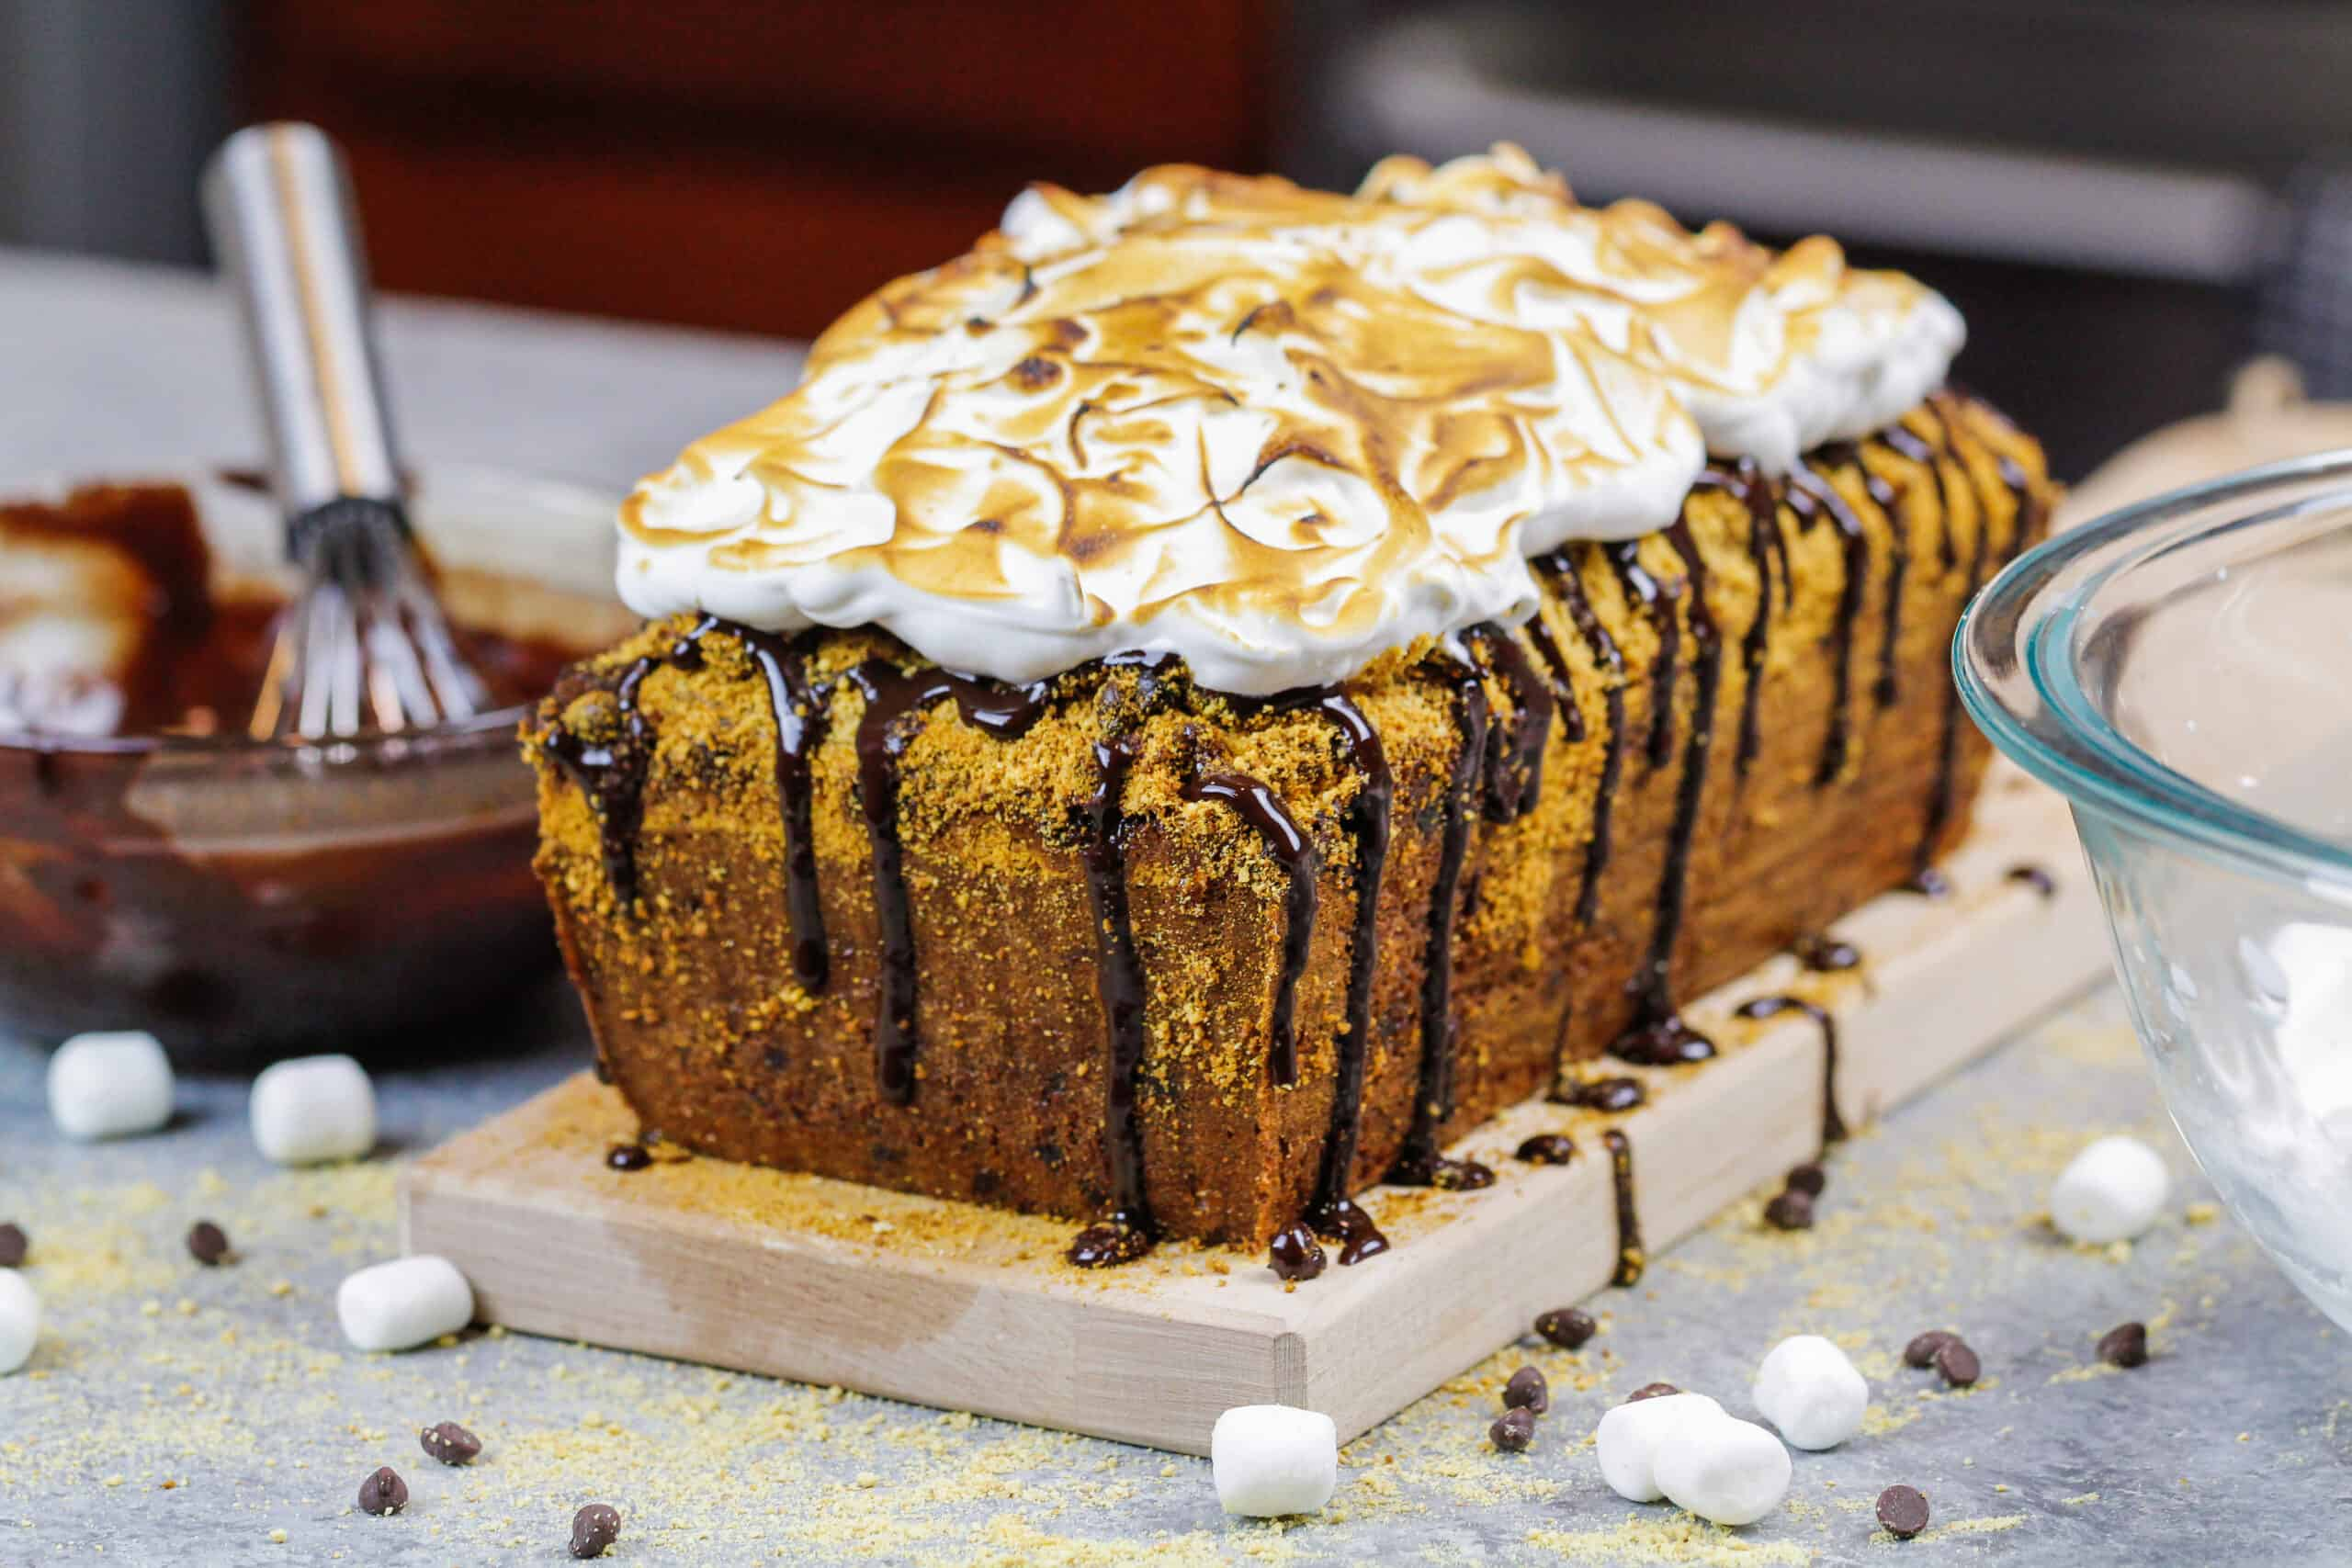 image of smores banana bread decorated with a chocolate drizzle and toasted marshmallow topping